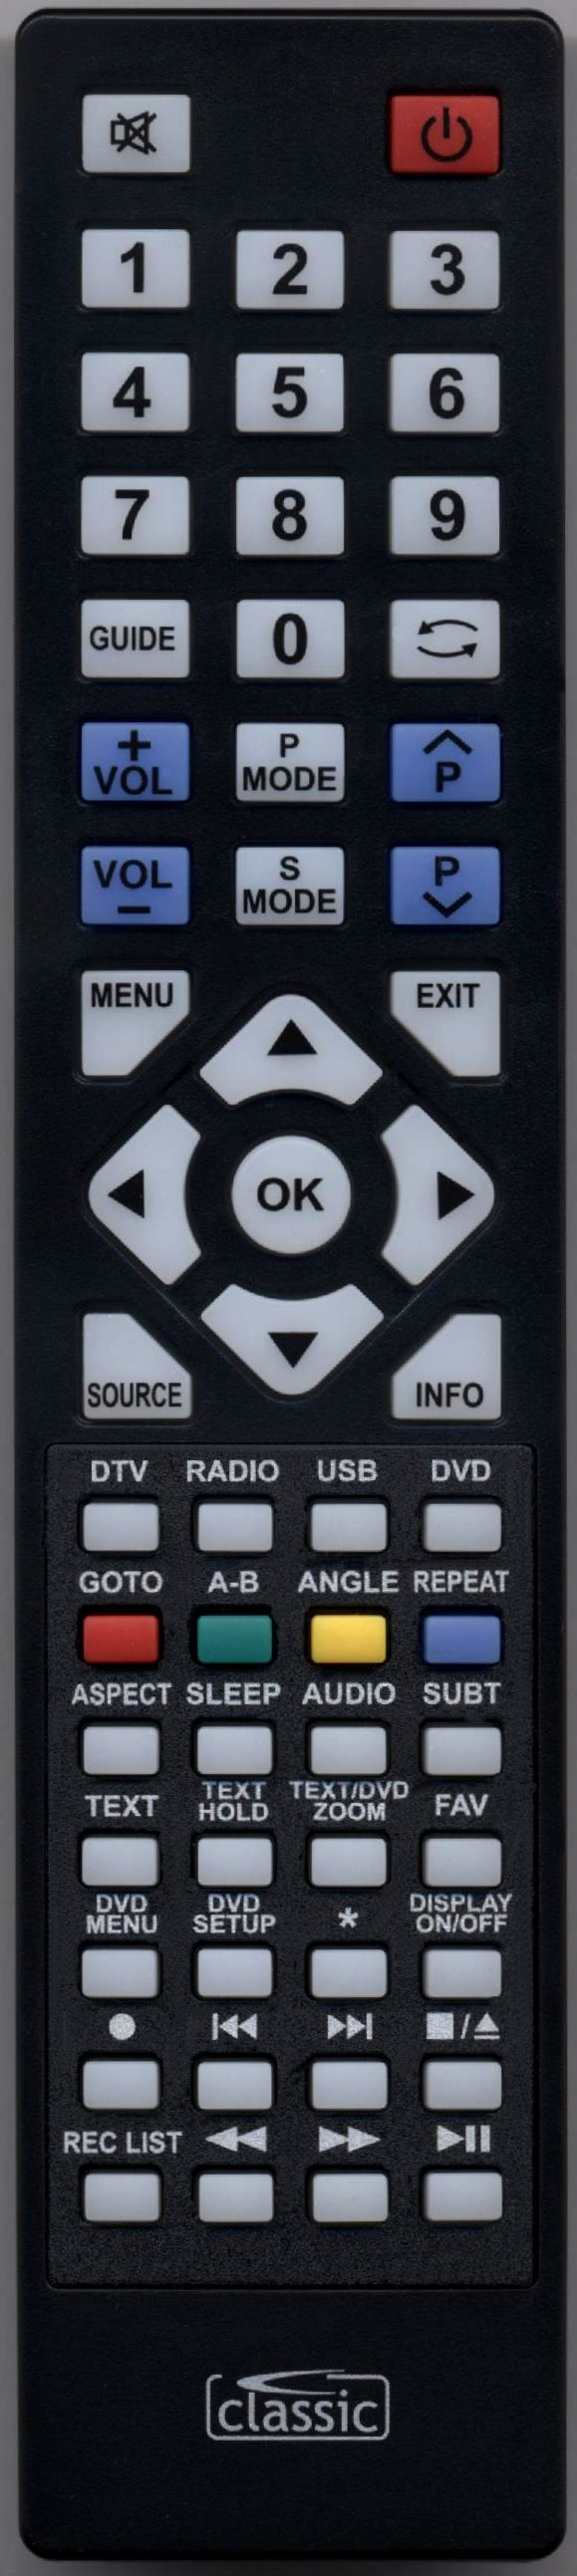 BLAUPUNKT 40/233I-GB-5B2-FHKUP-UK Remote Control